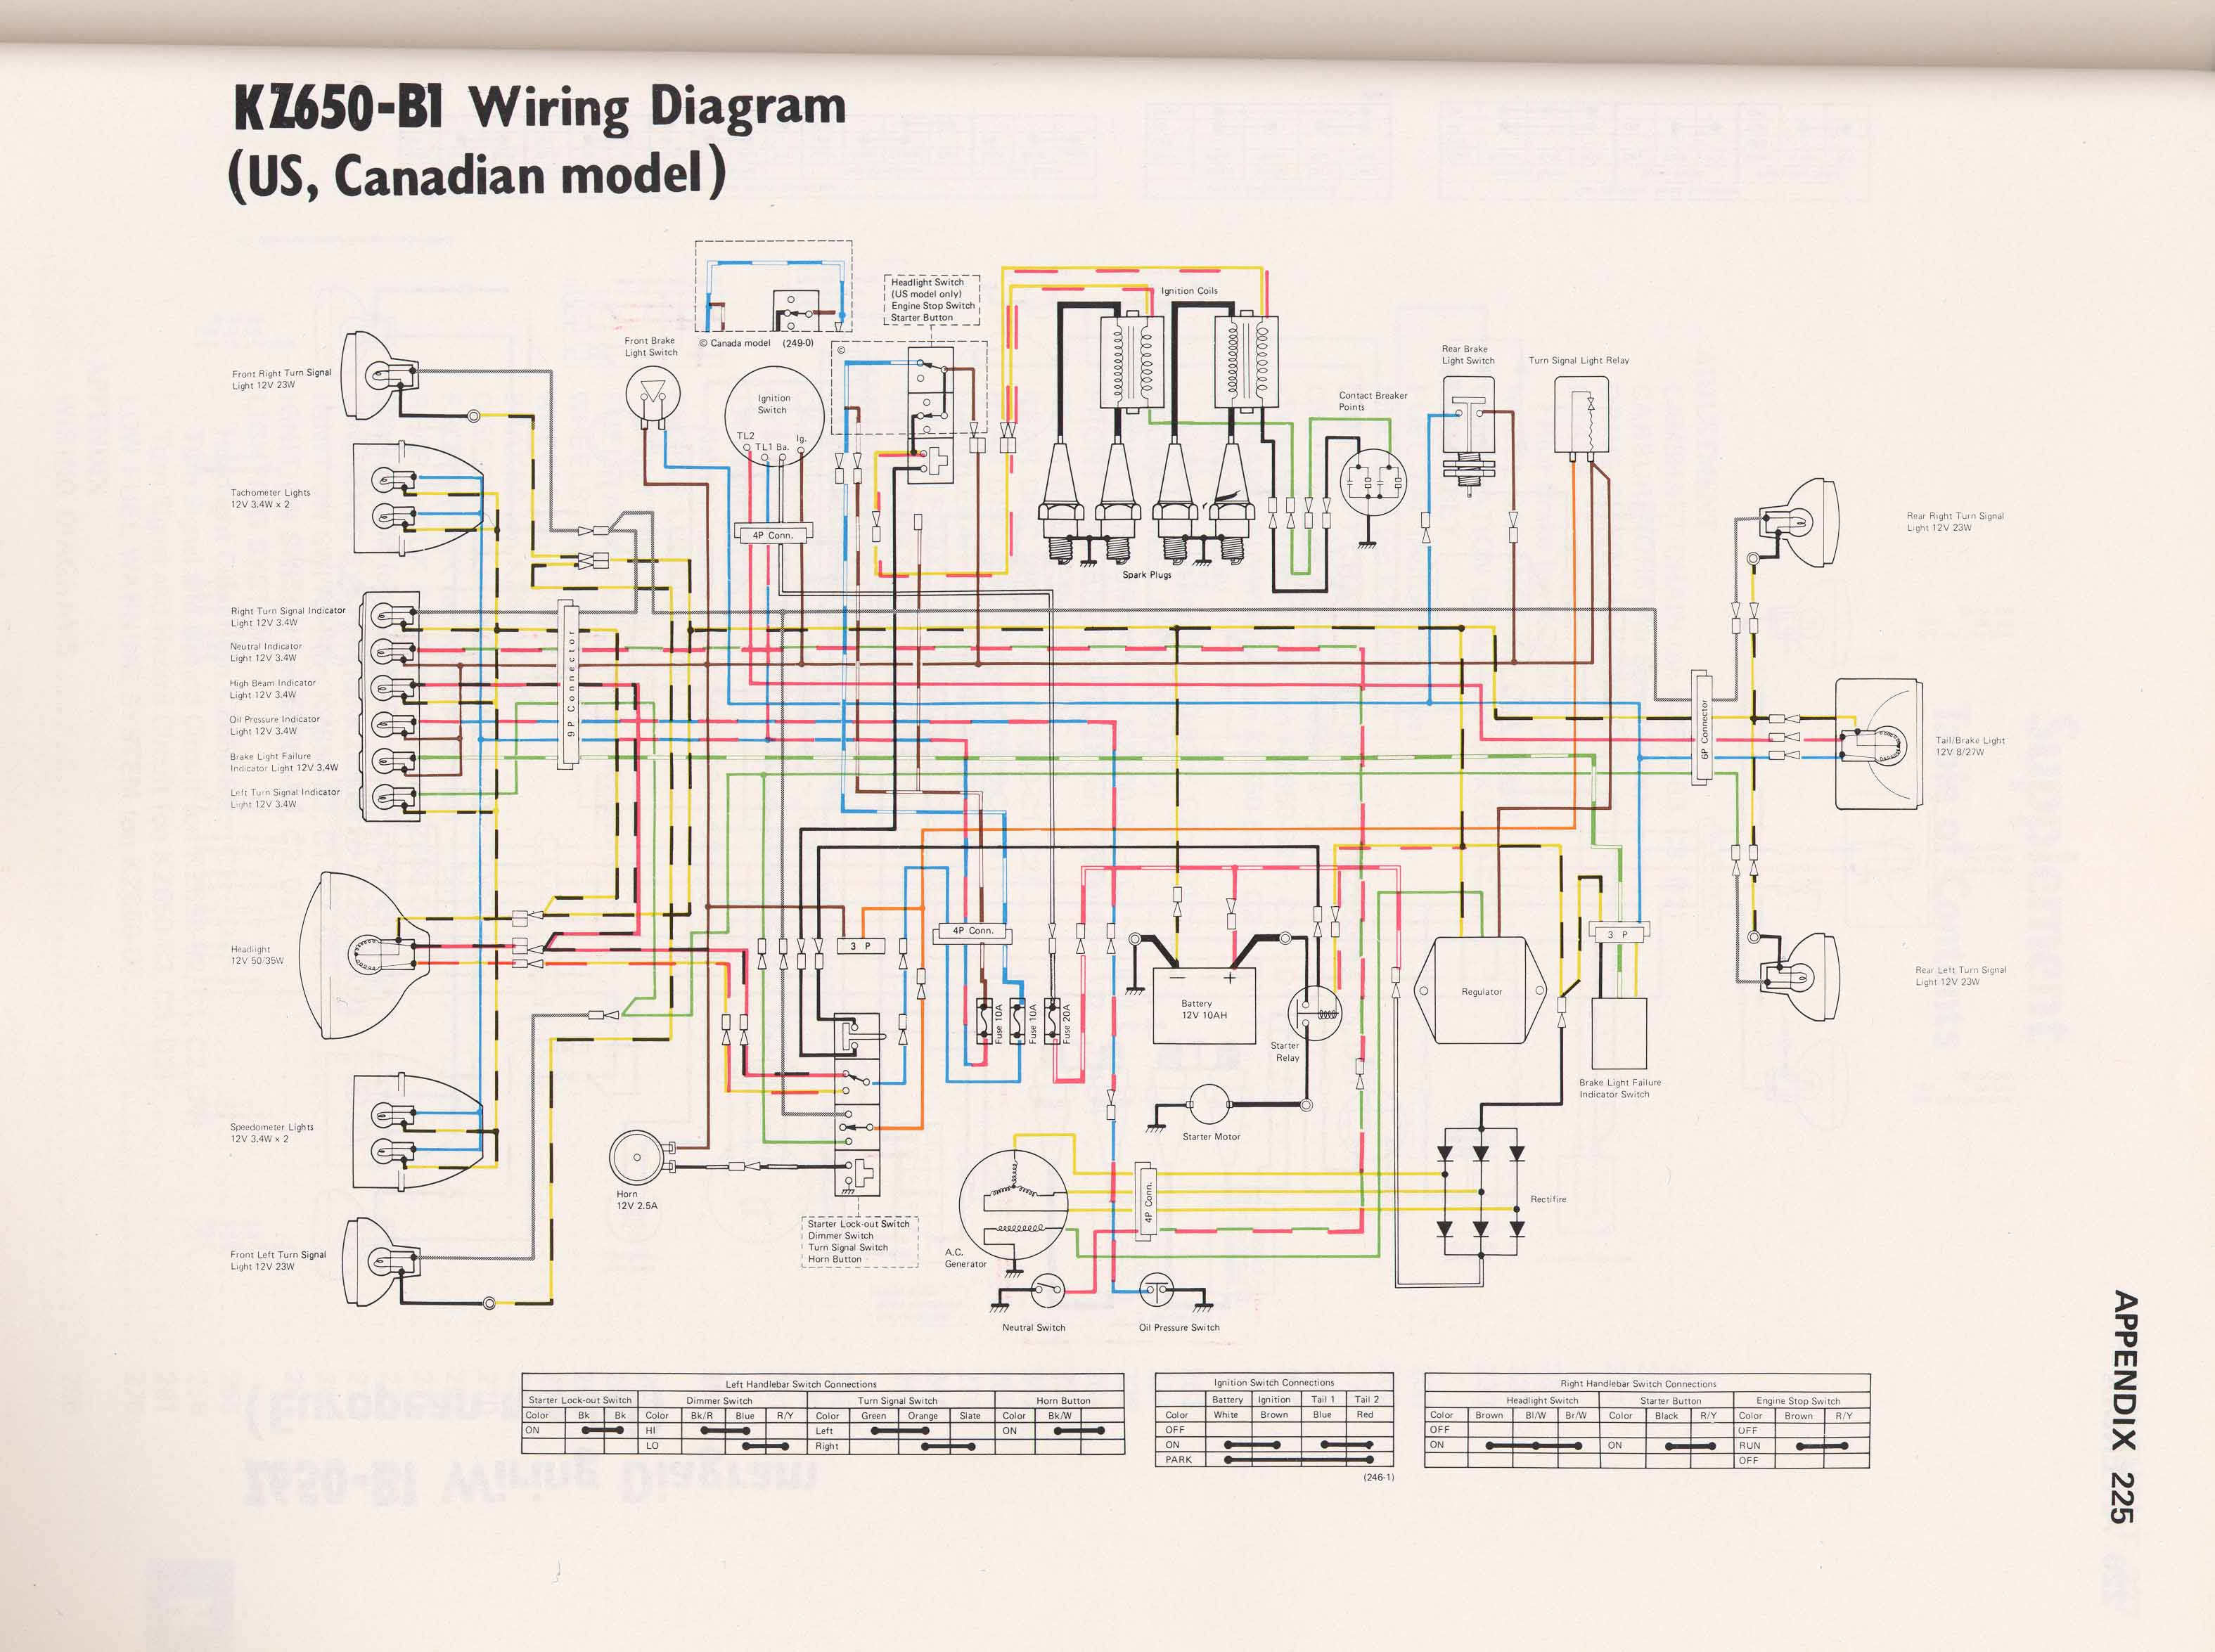 KZ650 B1 kz650 info wiring diagrams 1978 kawasaki kz650 wiring harness at alyssarenee.co